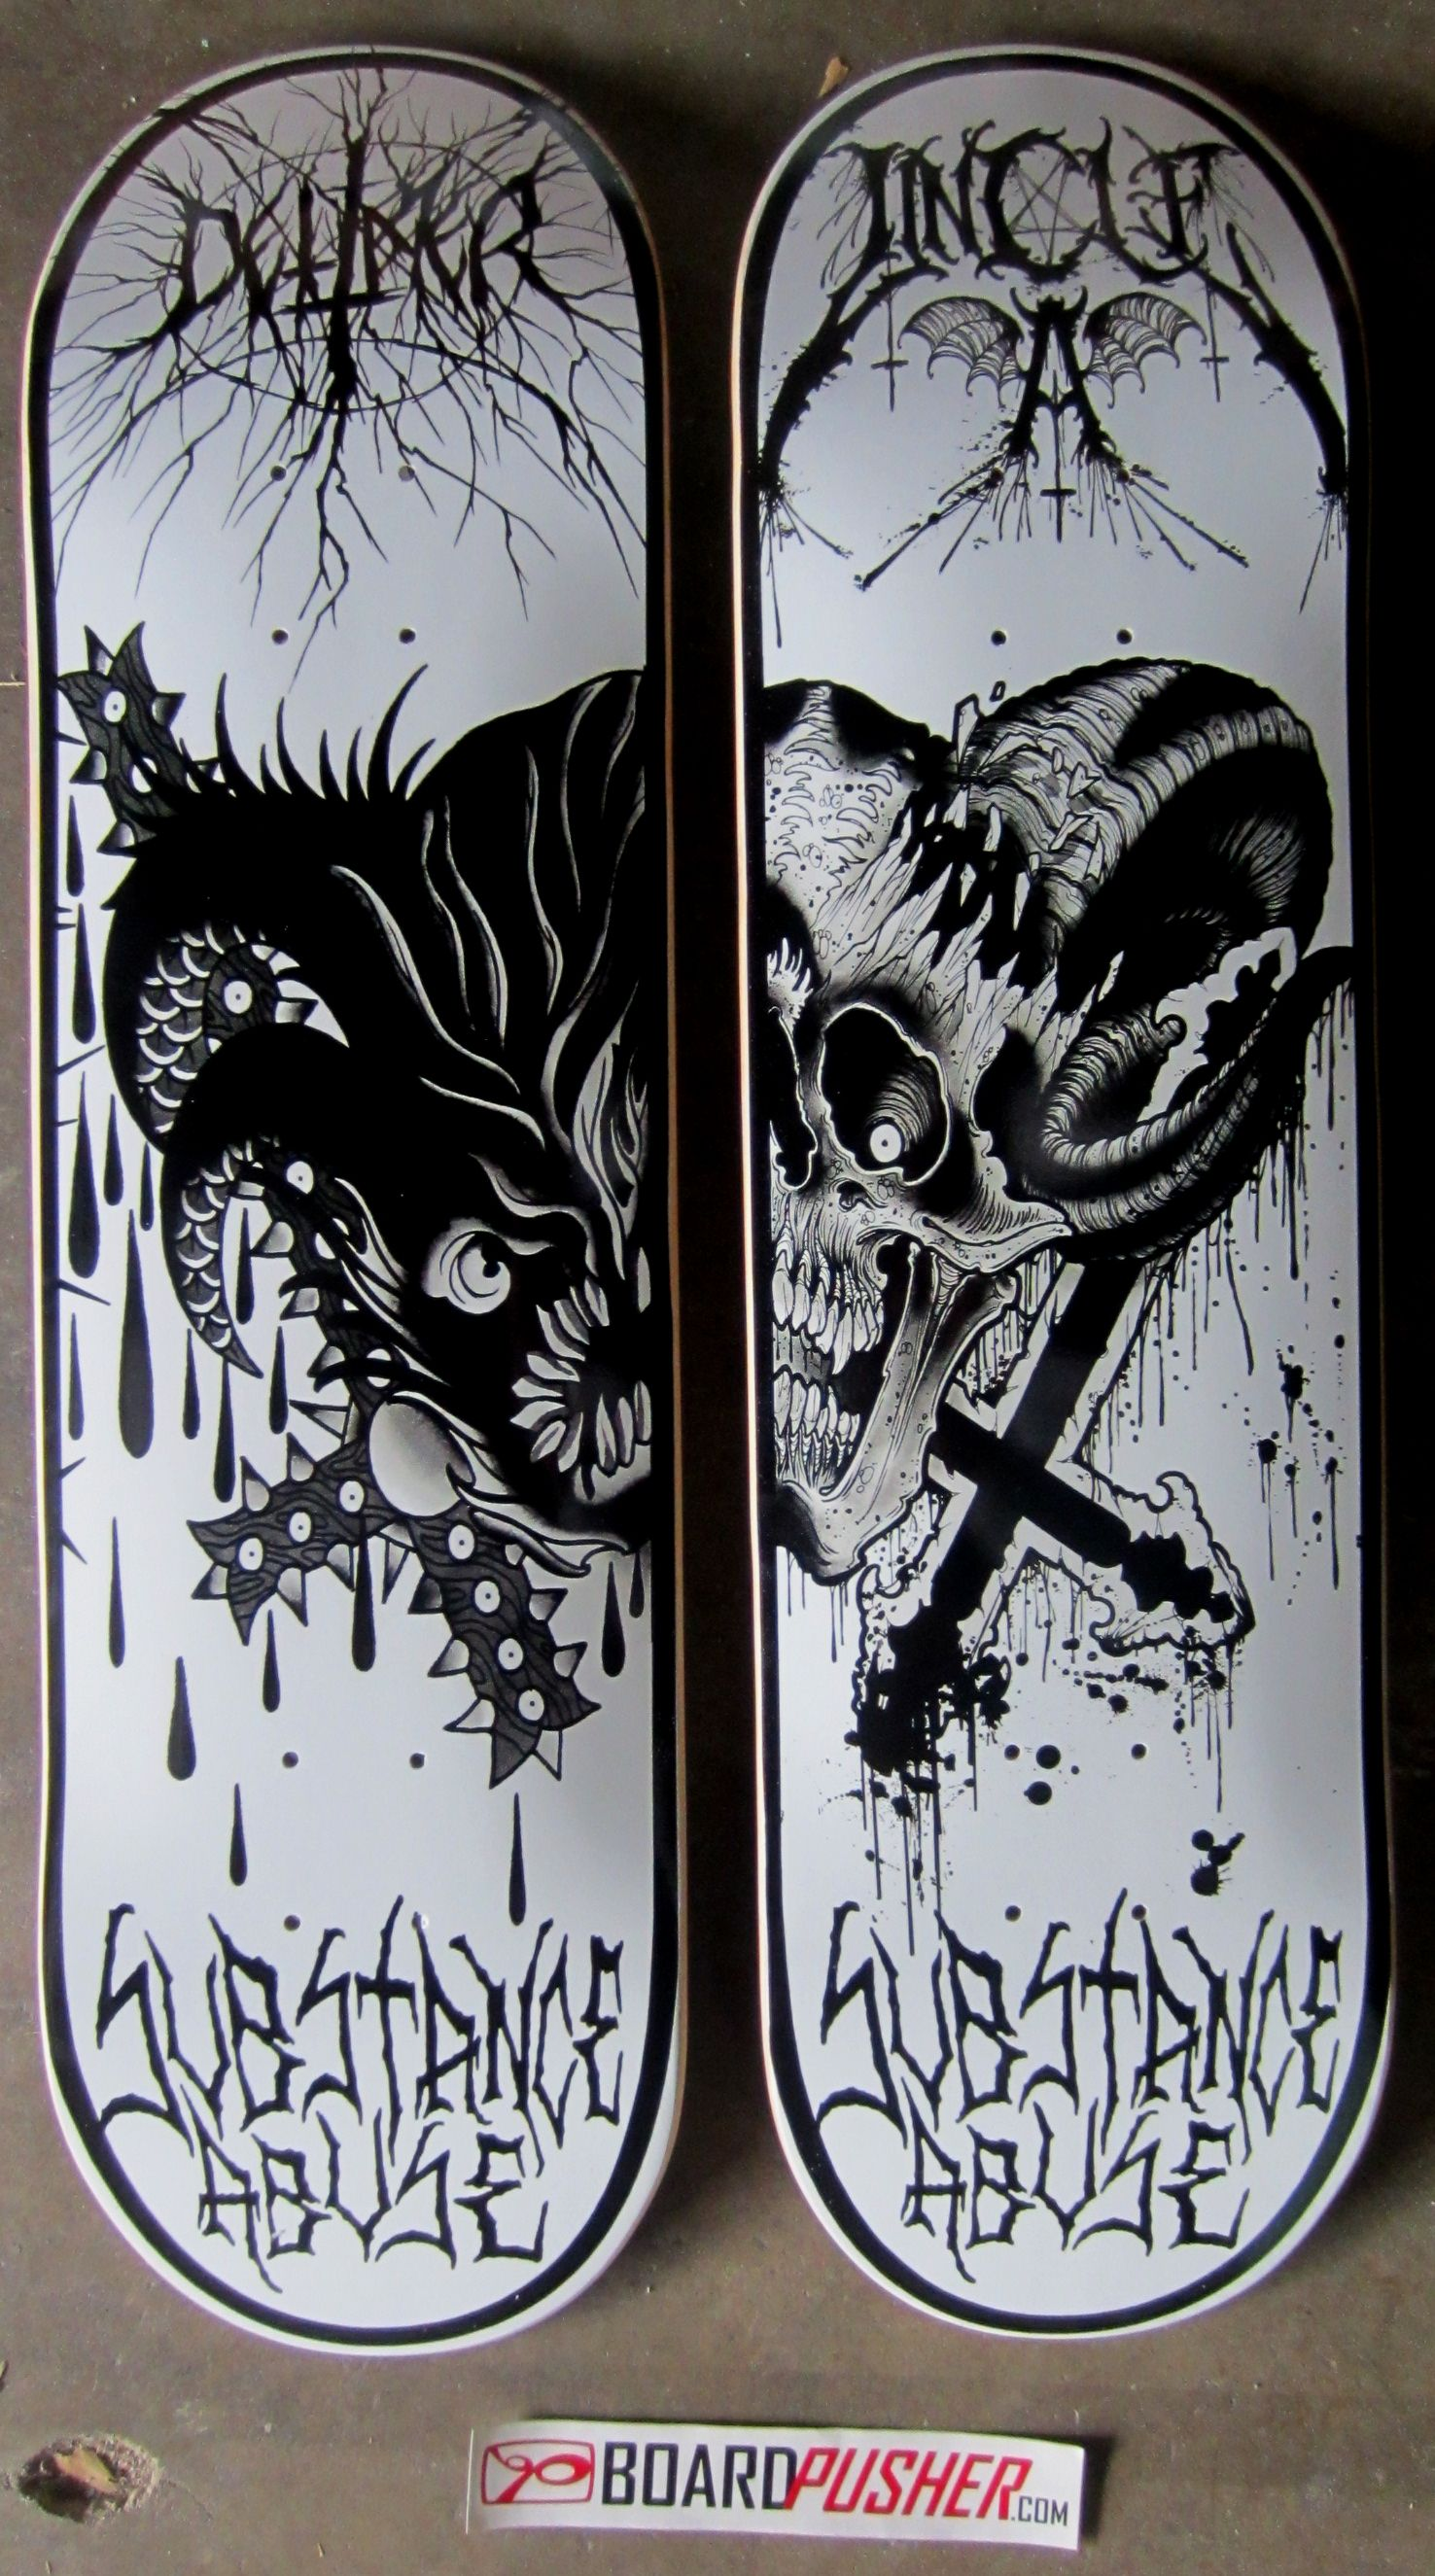 Get today 39 s featured decks dettmer and uncle a or a - Skateboard dessin ...